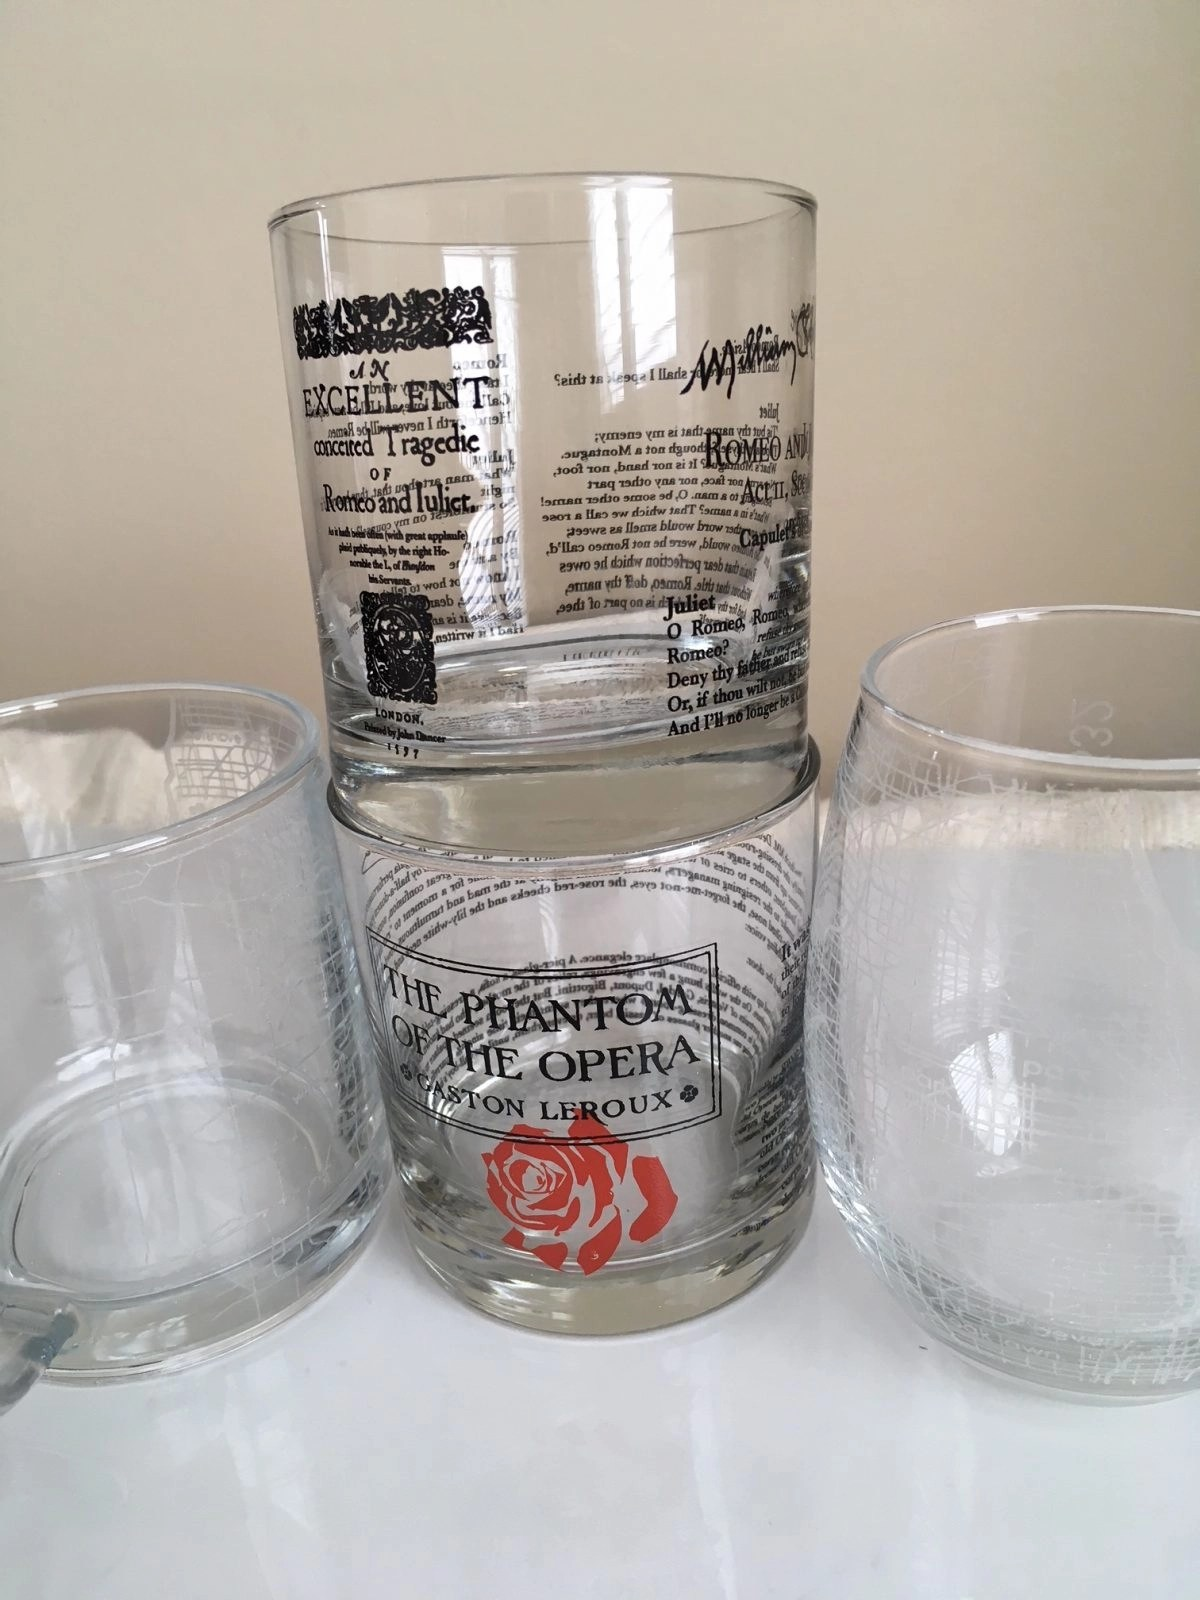 Engraved Glassware Makes A Fun And Unique Gift - Uncommon Green Engraved Glassware